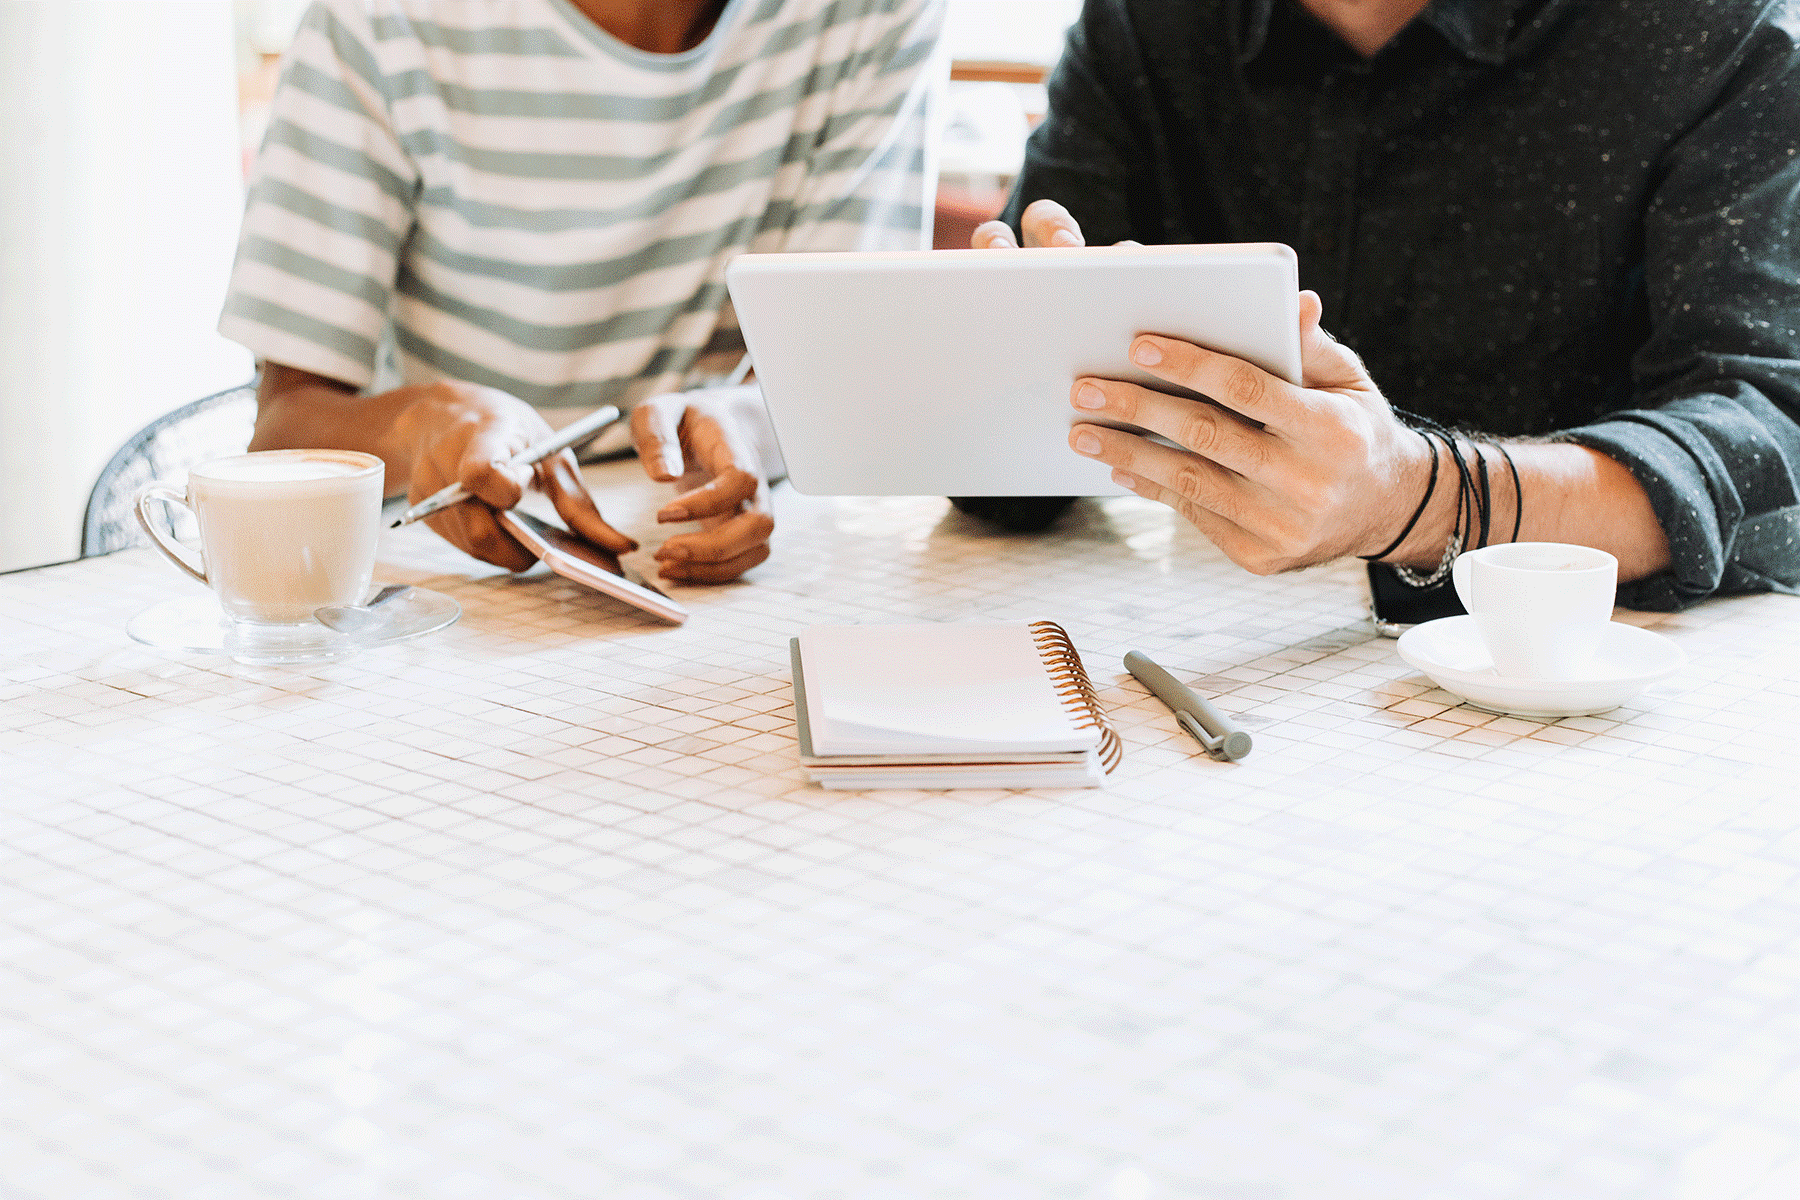 Two people looking at a tablet